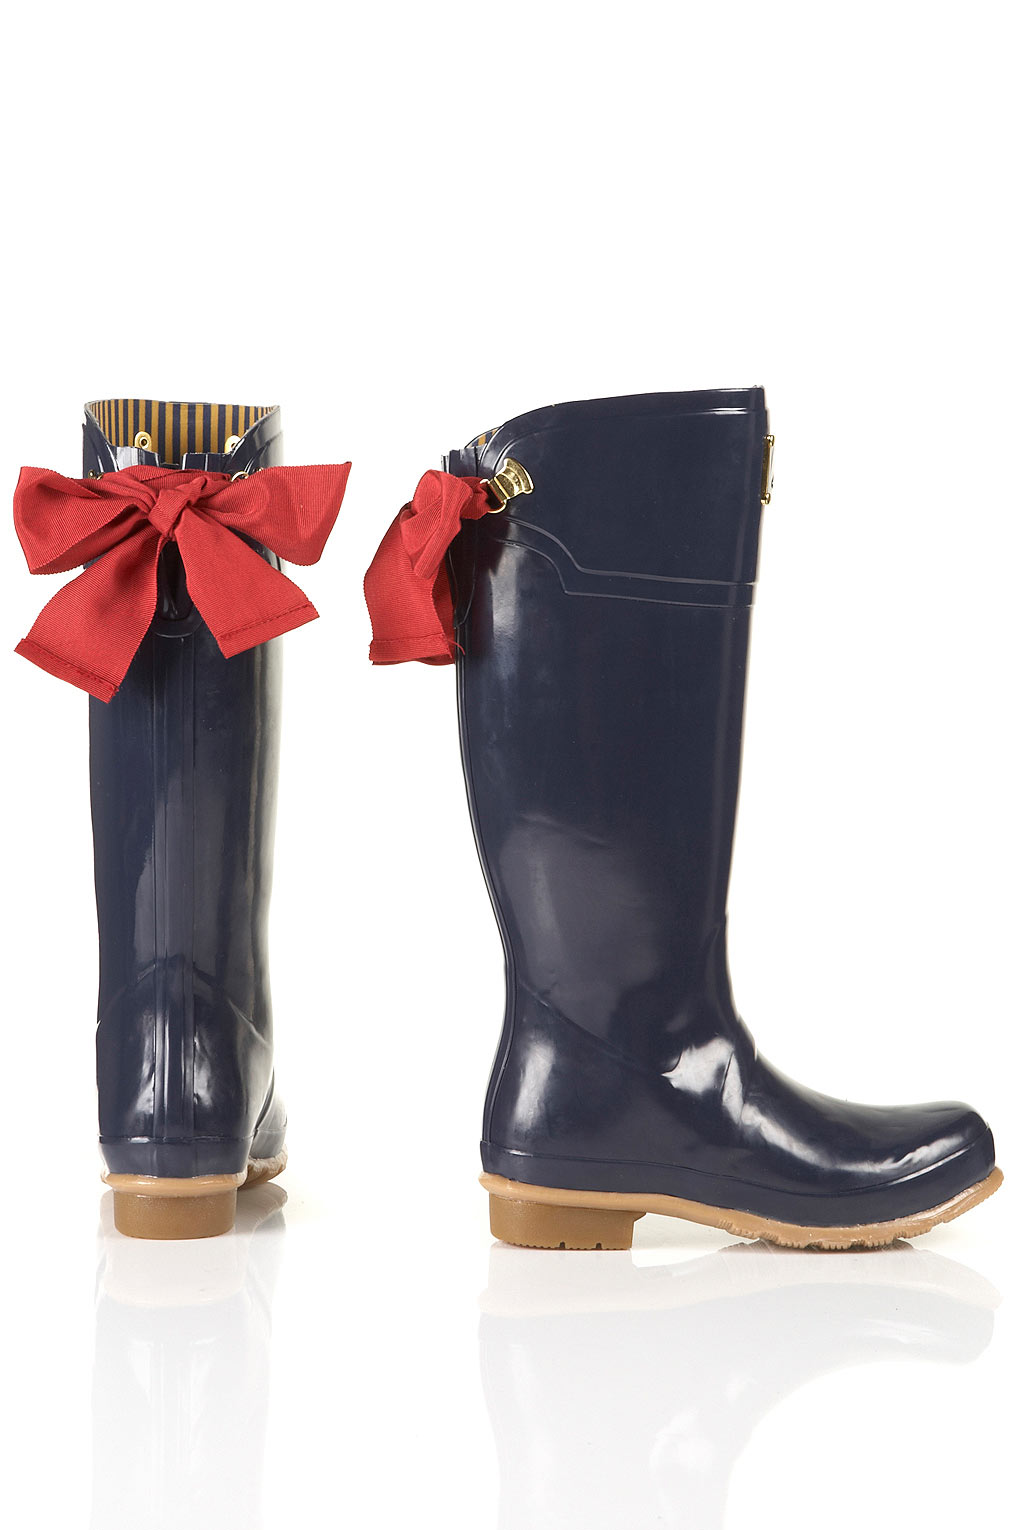 Joules Joules Evedon Ribbon Wellies In Blue Lyst